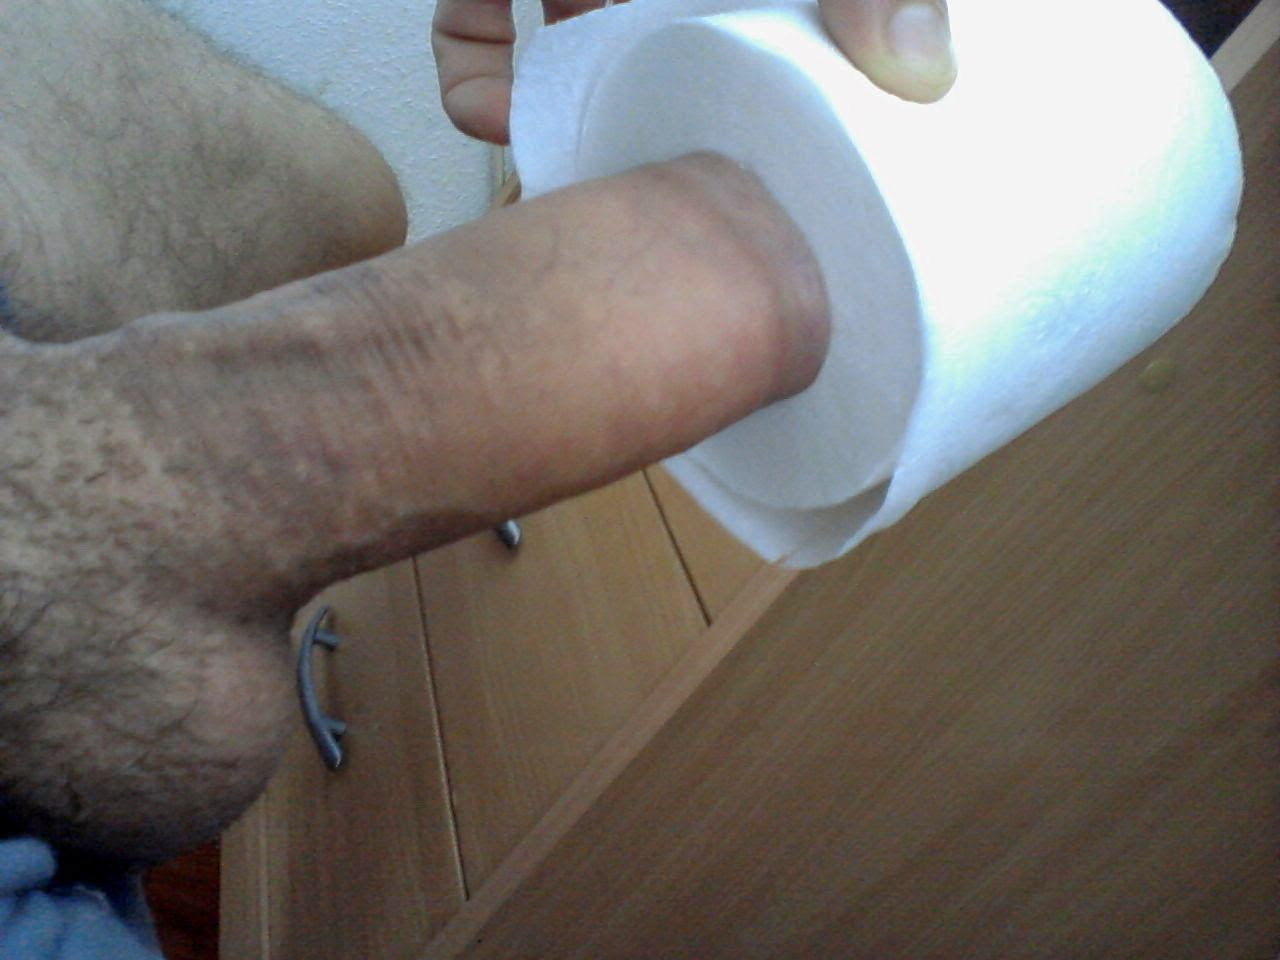 Hornyboys Toilet Paper Roll Penis Size Test 2